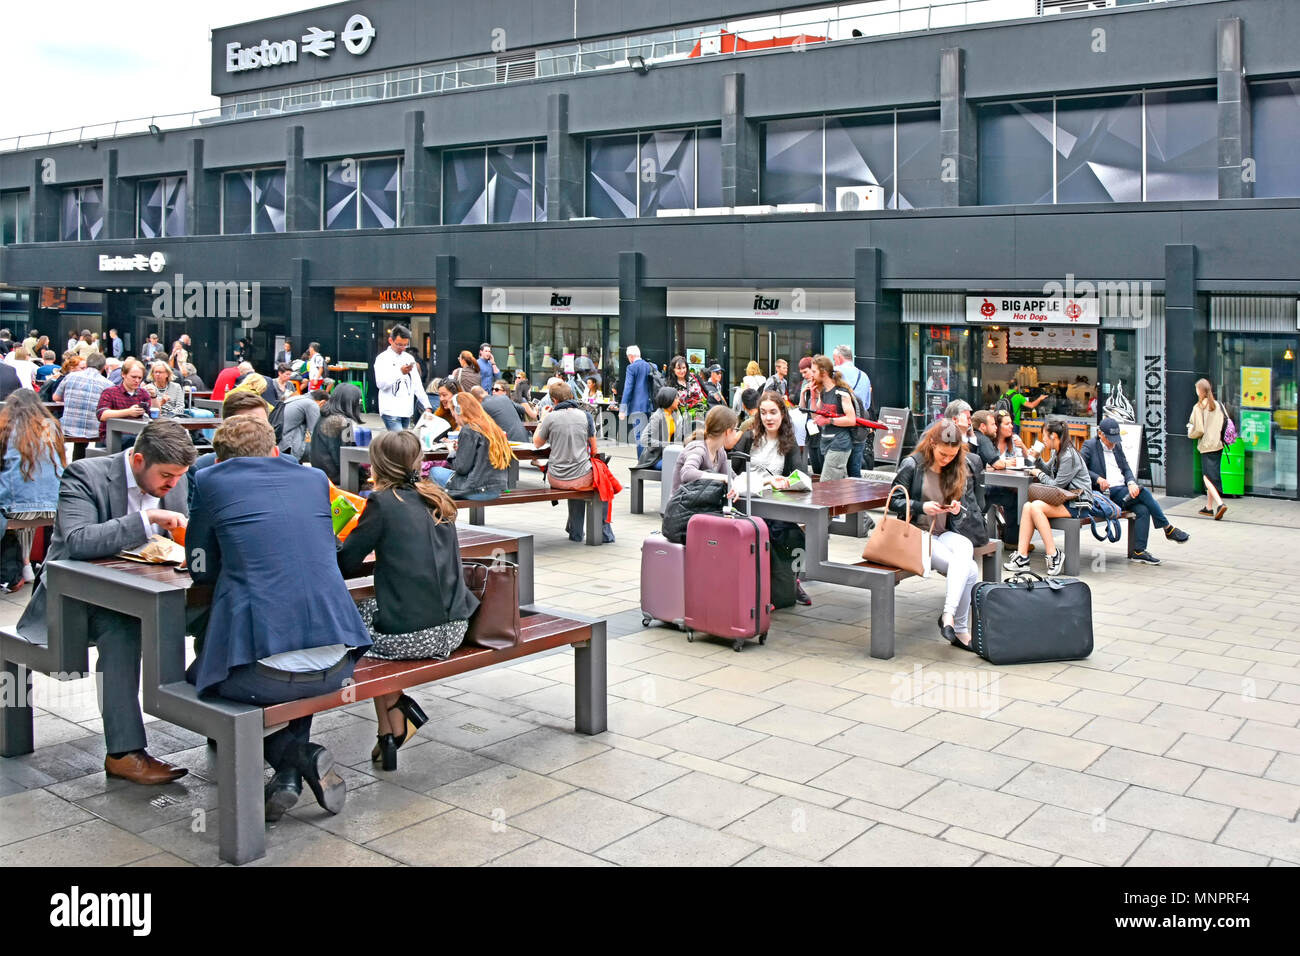 Crowd of people   railway travel wait at picnic table outside London Euston train station some with suitcase luggage fast food café shops beyond UK - Stock Image